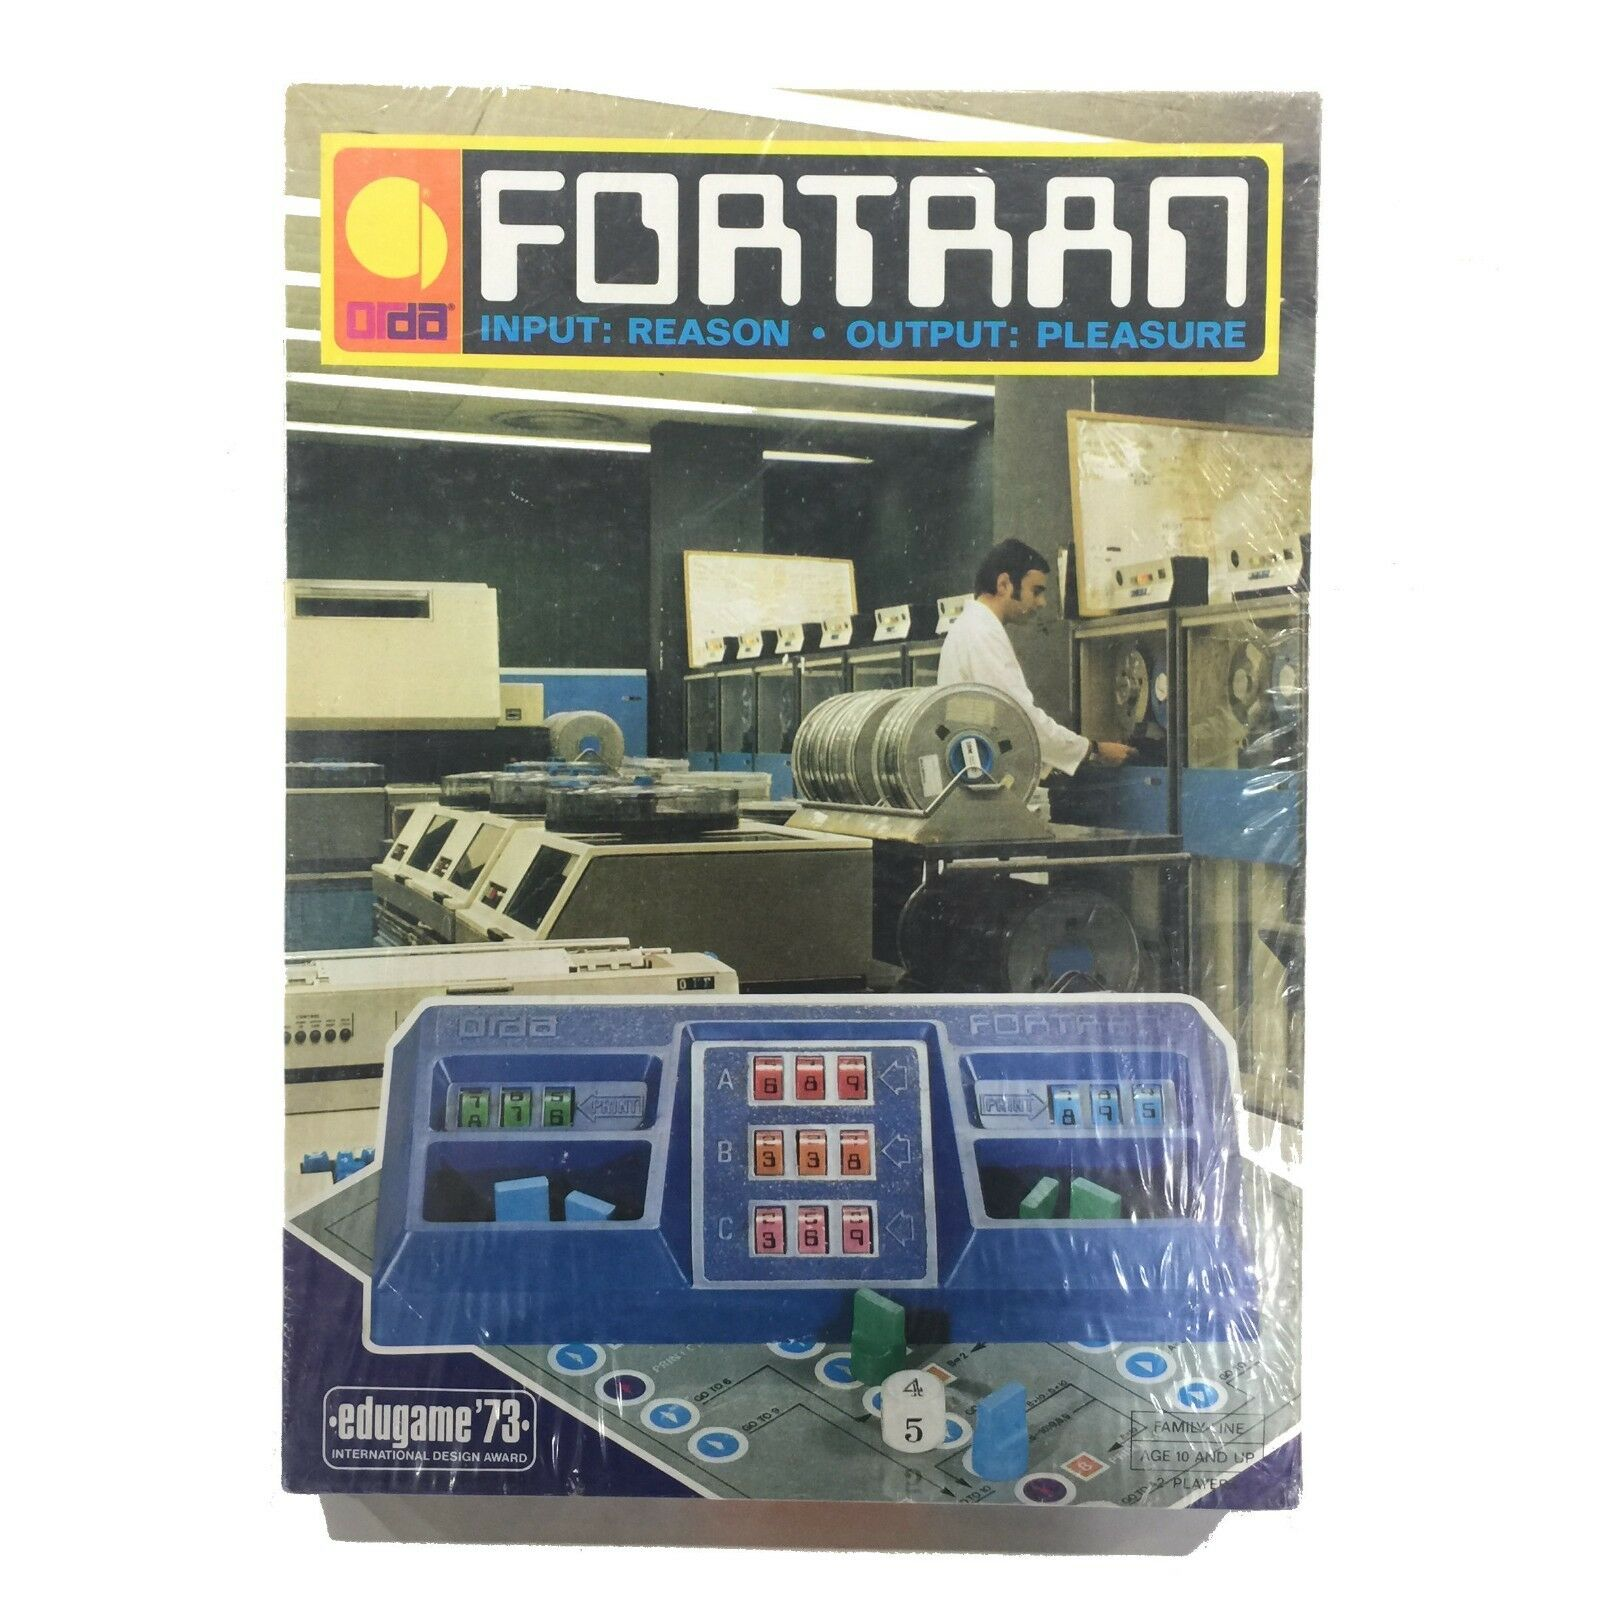 SEALED Fortran Computer Board Game VTG 1973 Orda Program Code Edugame Israel